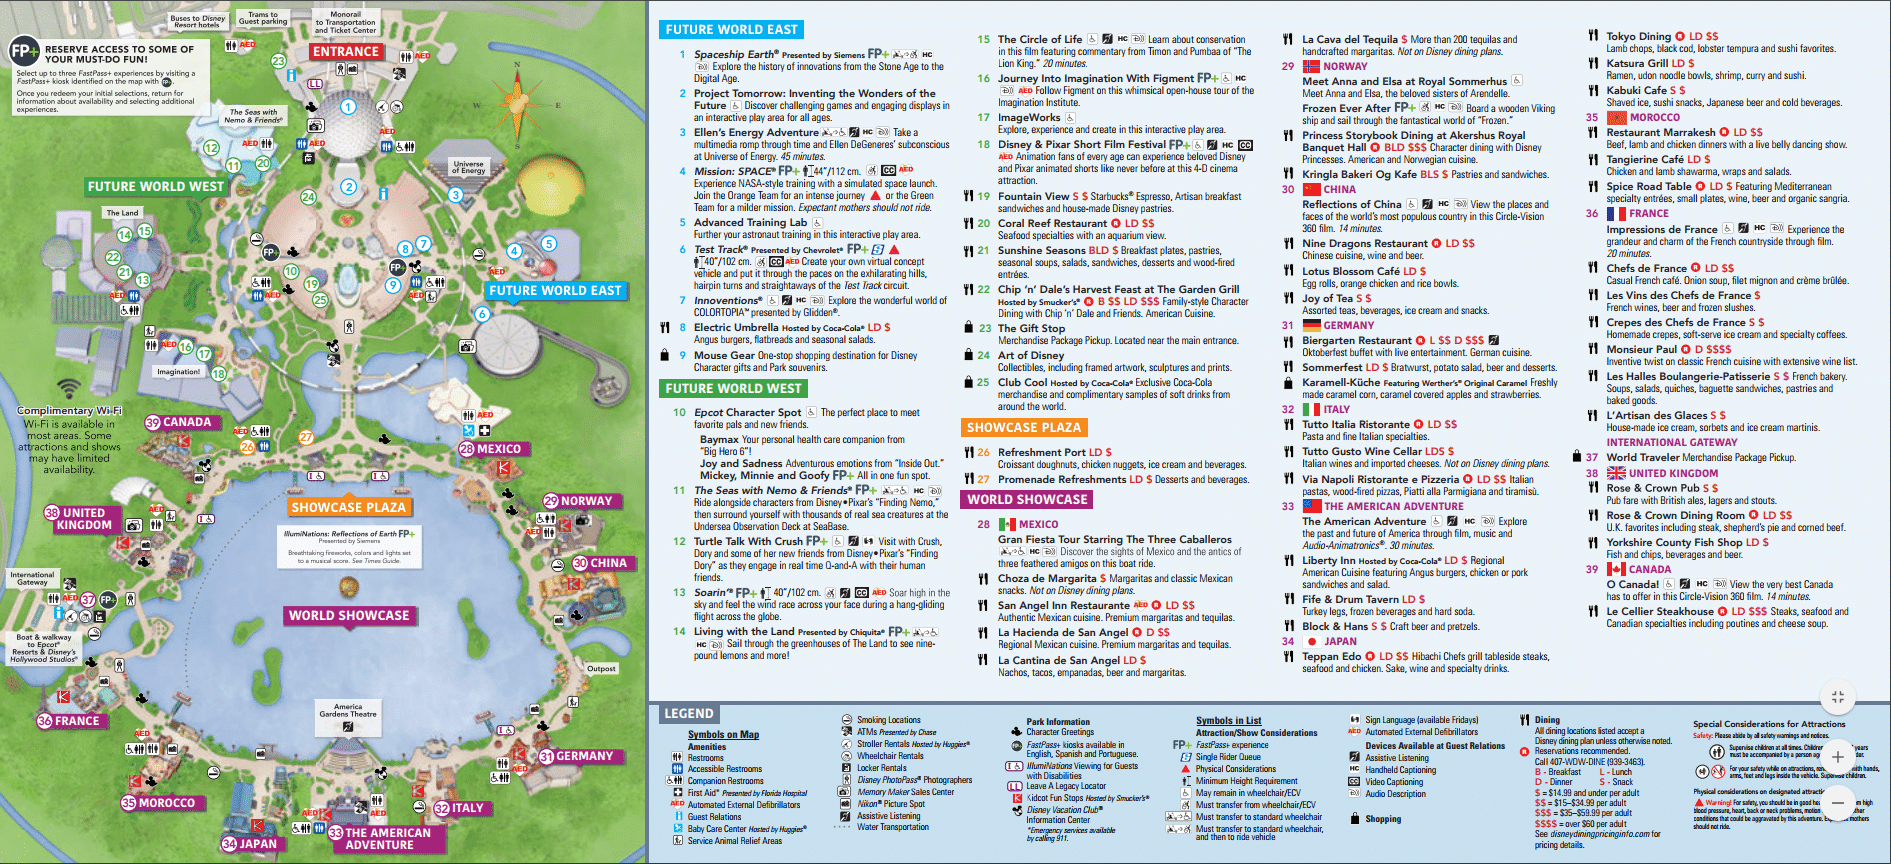 Epcot map - Complete guide to Epcot